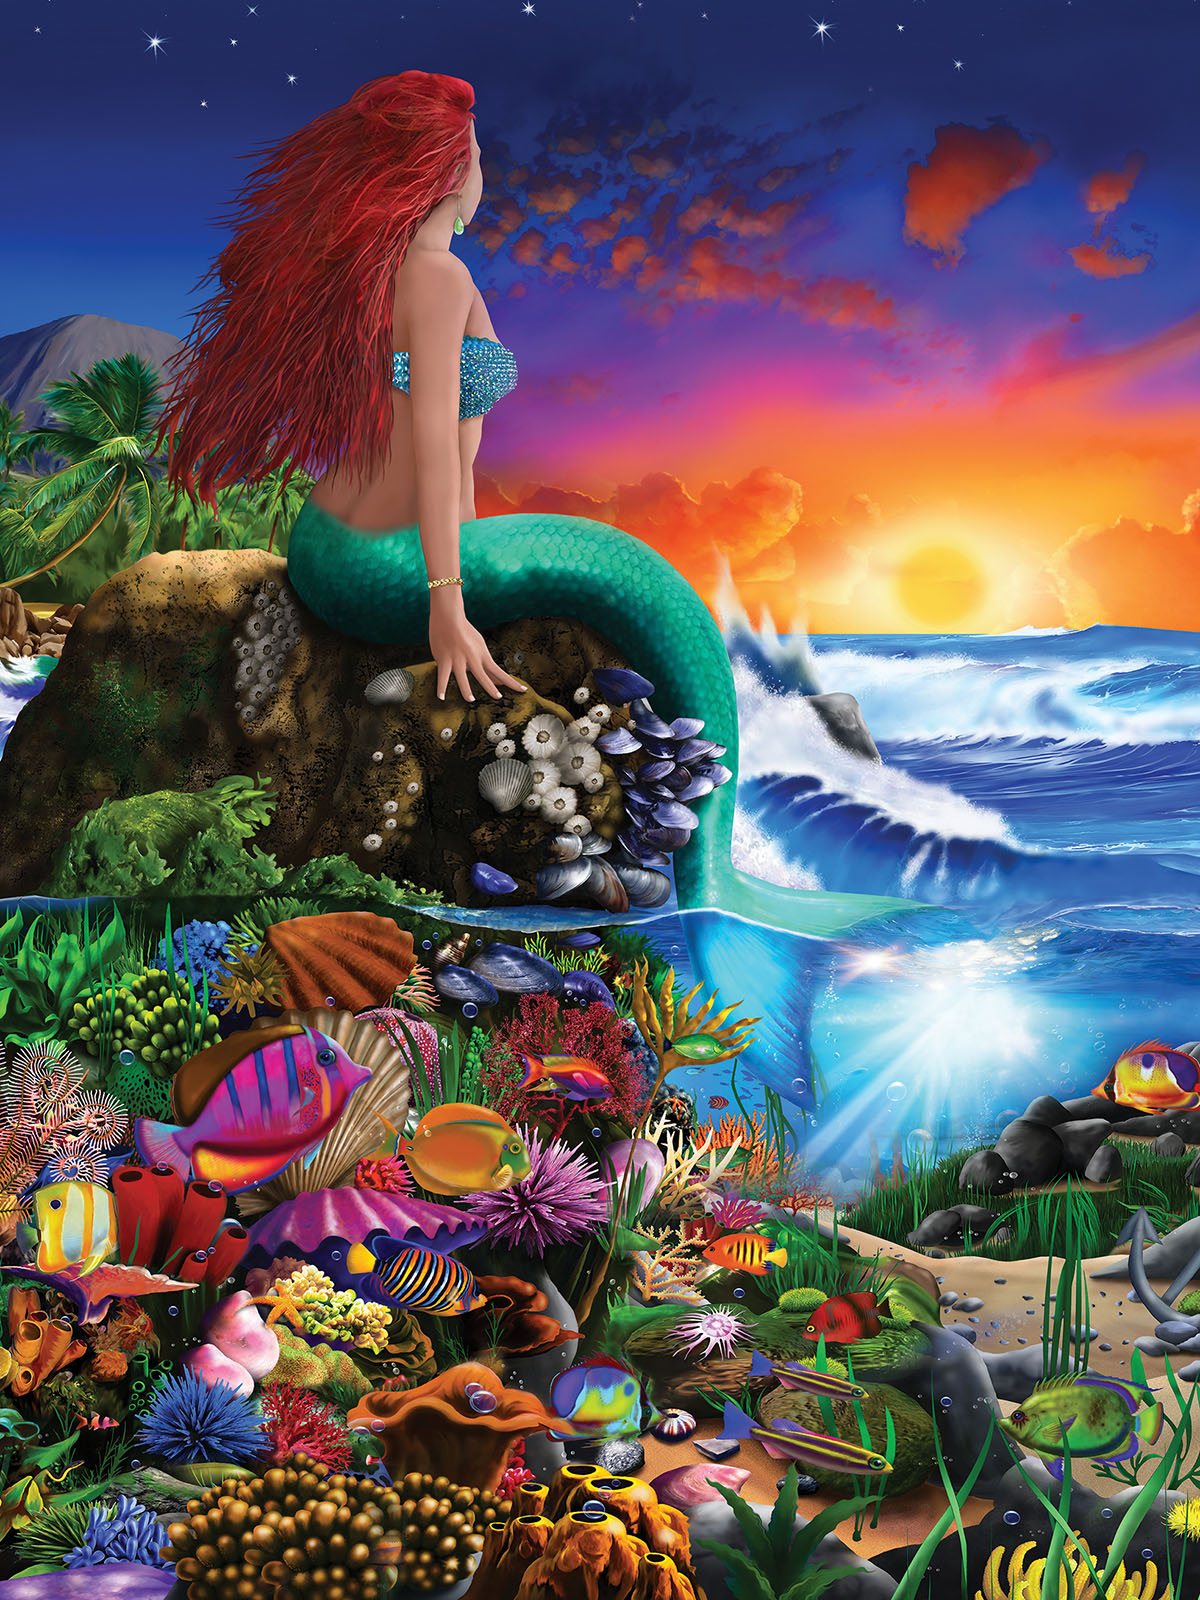 Little Mermaid Mermaids Jigsaw Puzzle